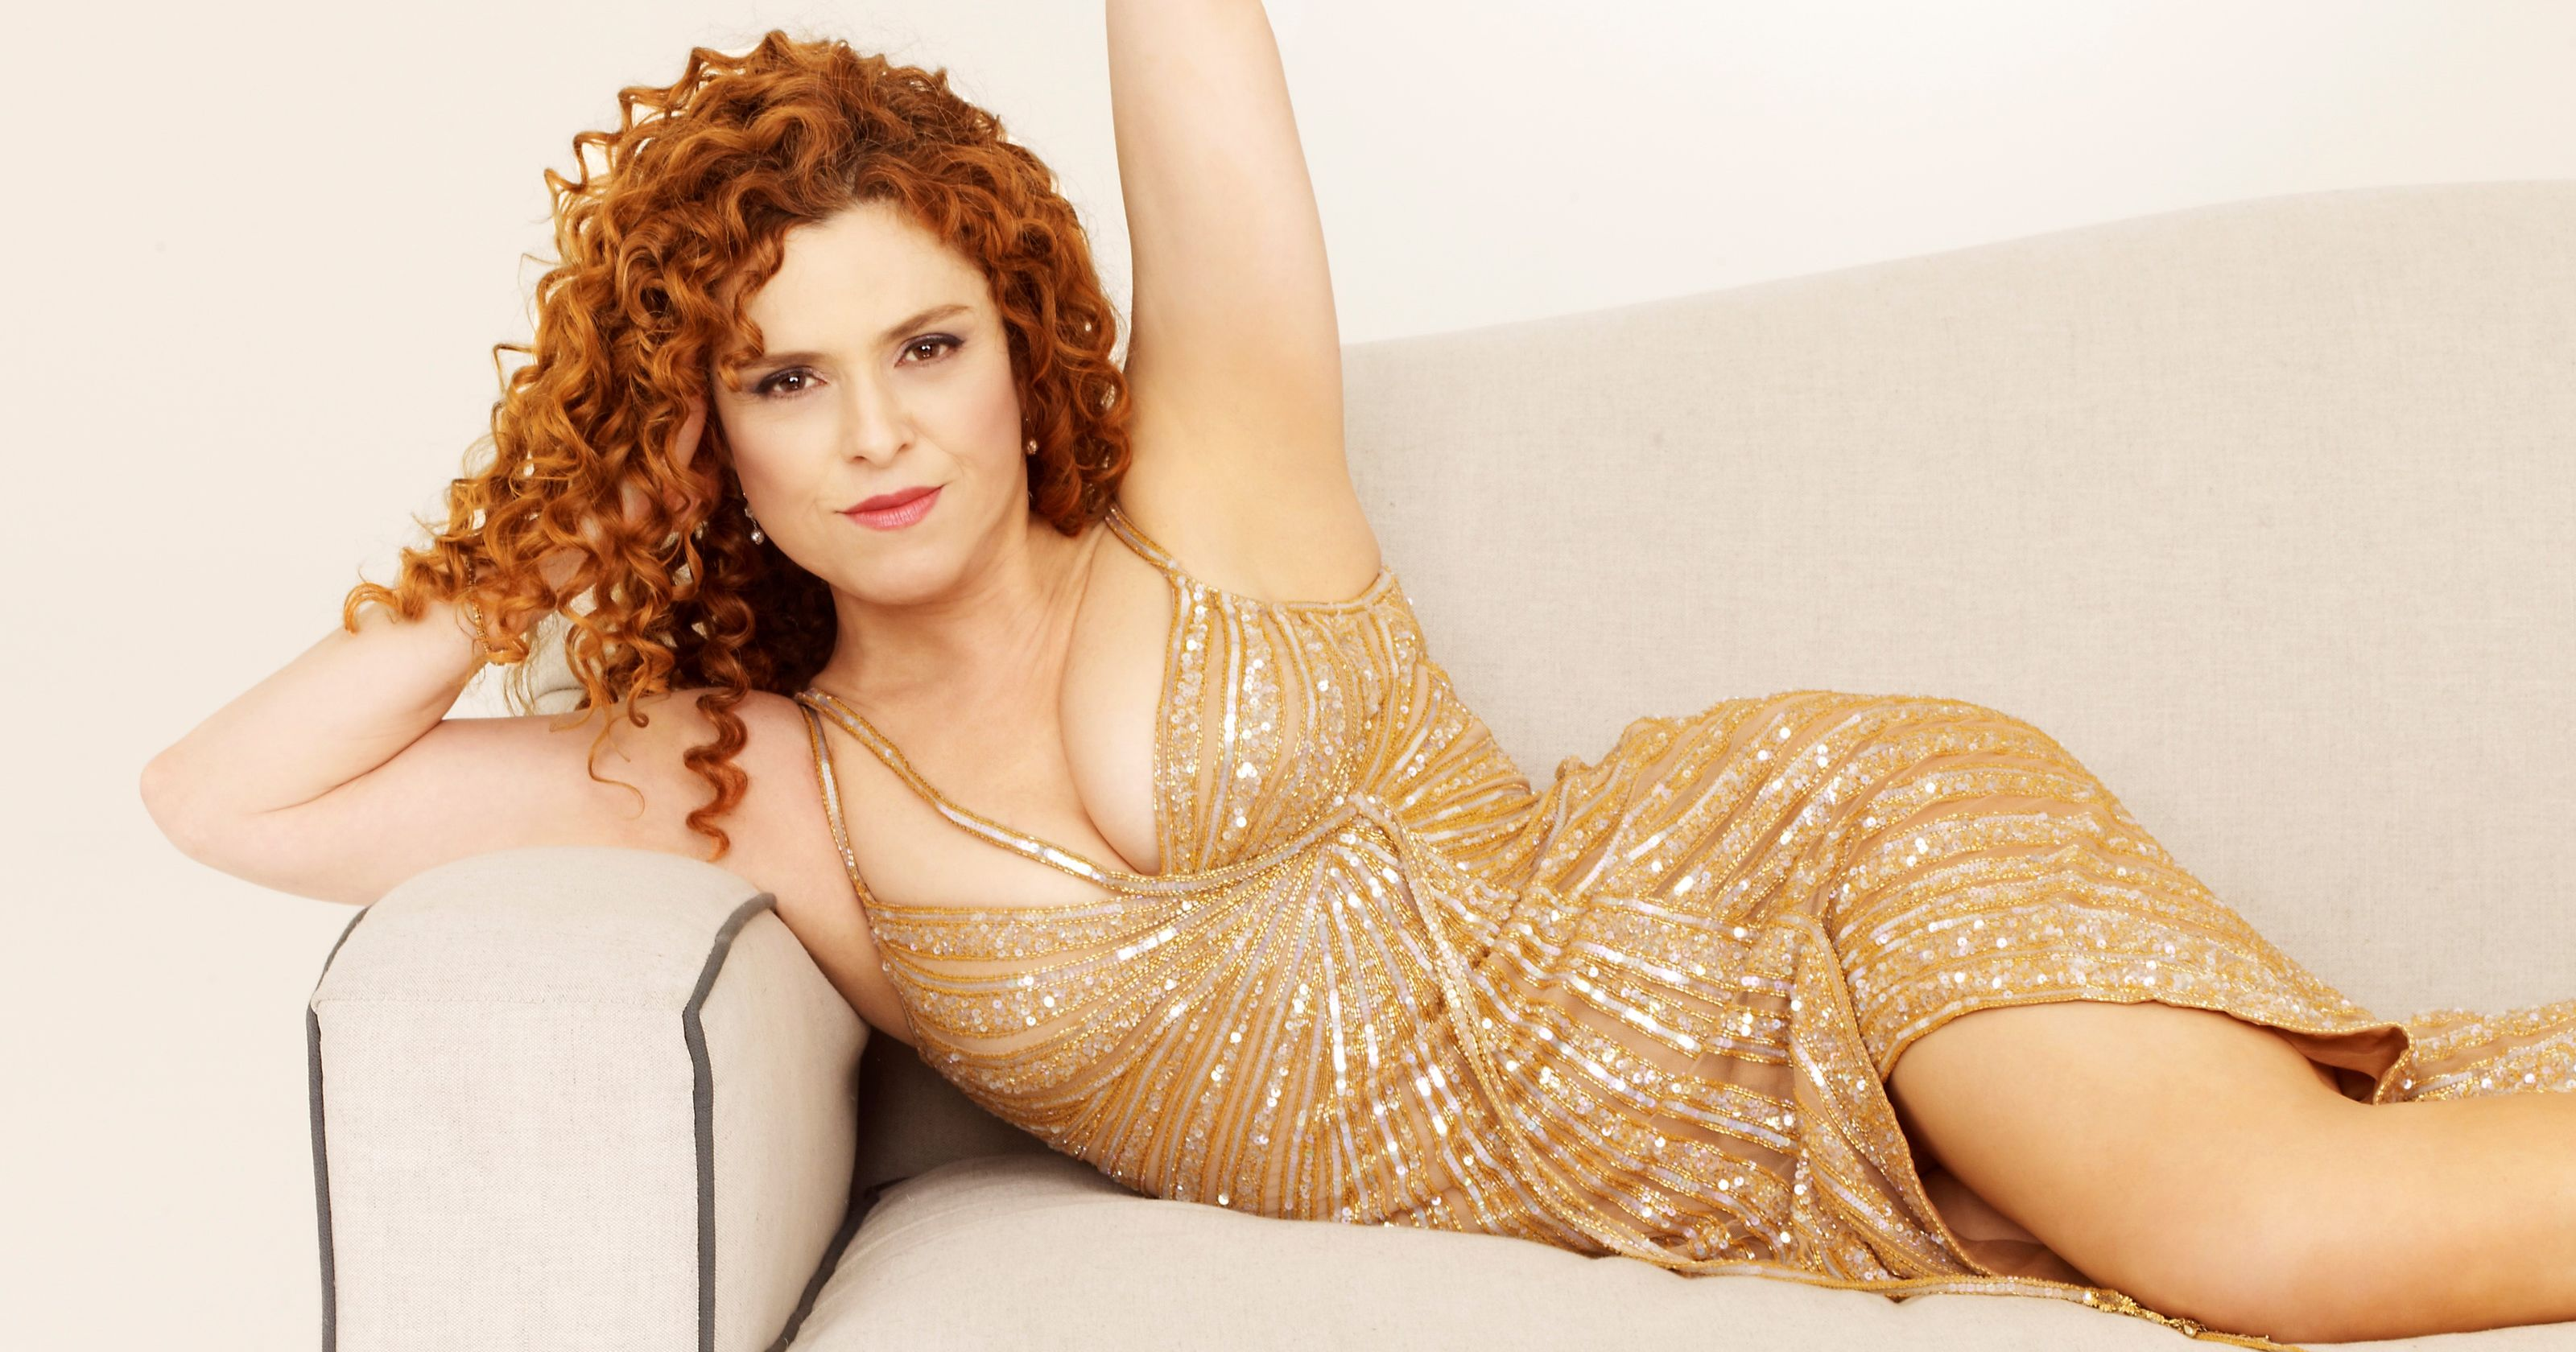 Bernadette Peters Seattle on Equality365.com